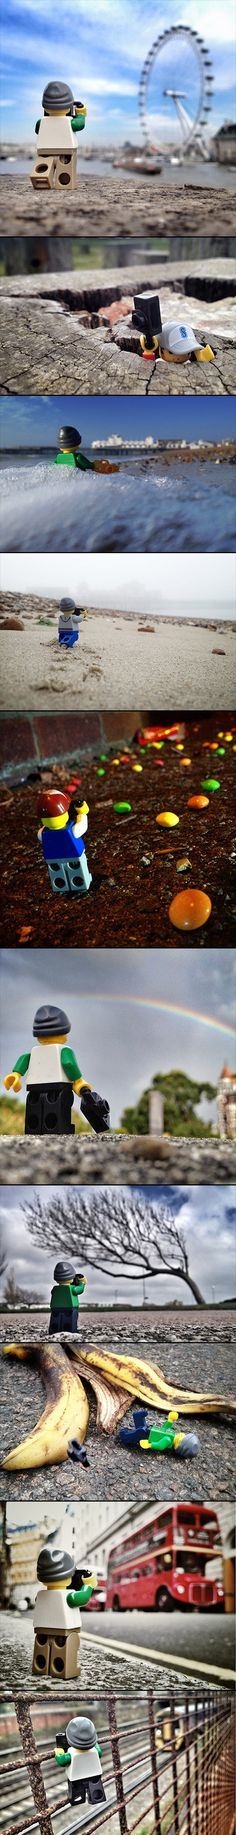 Photographer Andrew Whyte has found a new way to incorporate LEGOs into the world in his 365-day series, The Legographer. The whimsical collection features a little LEGO figure placed into all kinds of fun and unexpected settings around town. We catch only a glimpse of the toy photographer's face as he composes the perfect landscape or ventures beyond the known and into the crevices of a brick wall.